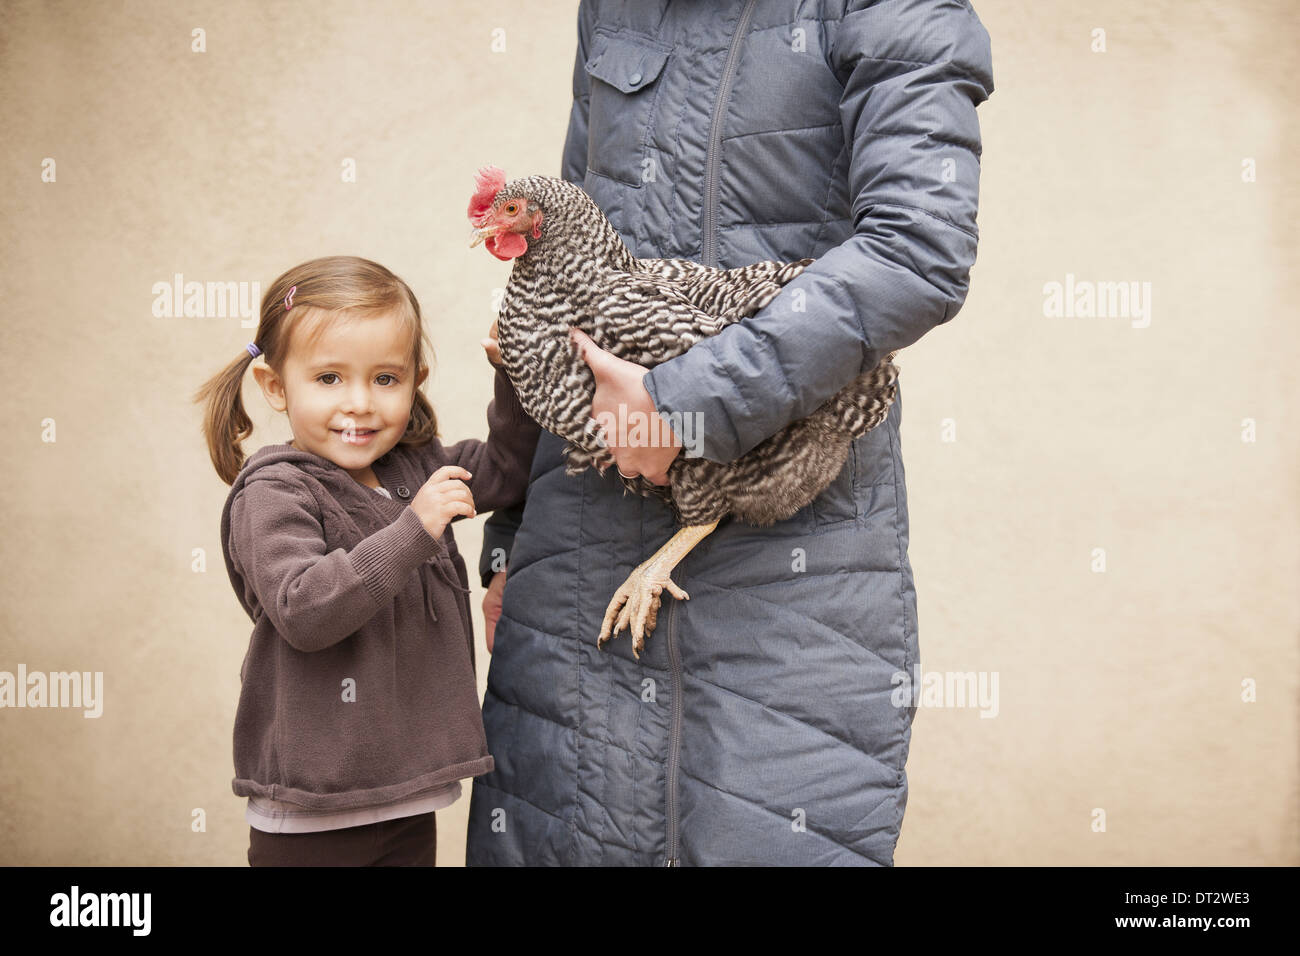 A woman holding a black and white chicken with a red coxcomb under one arm A young girl beside her holding her other hand - Stock Image